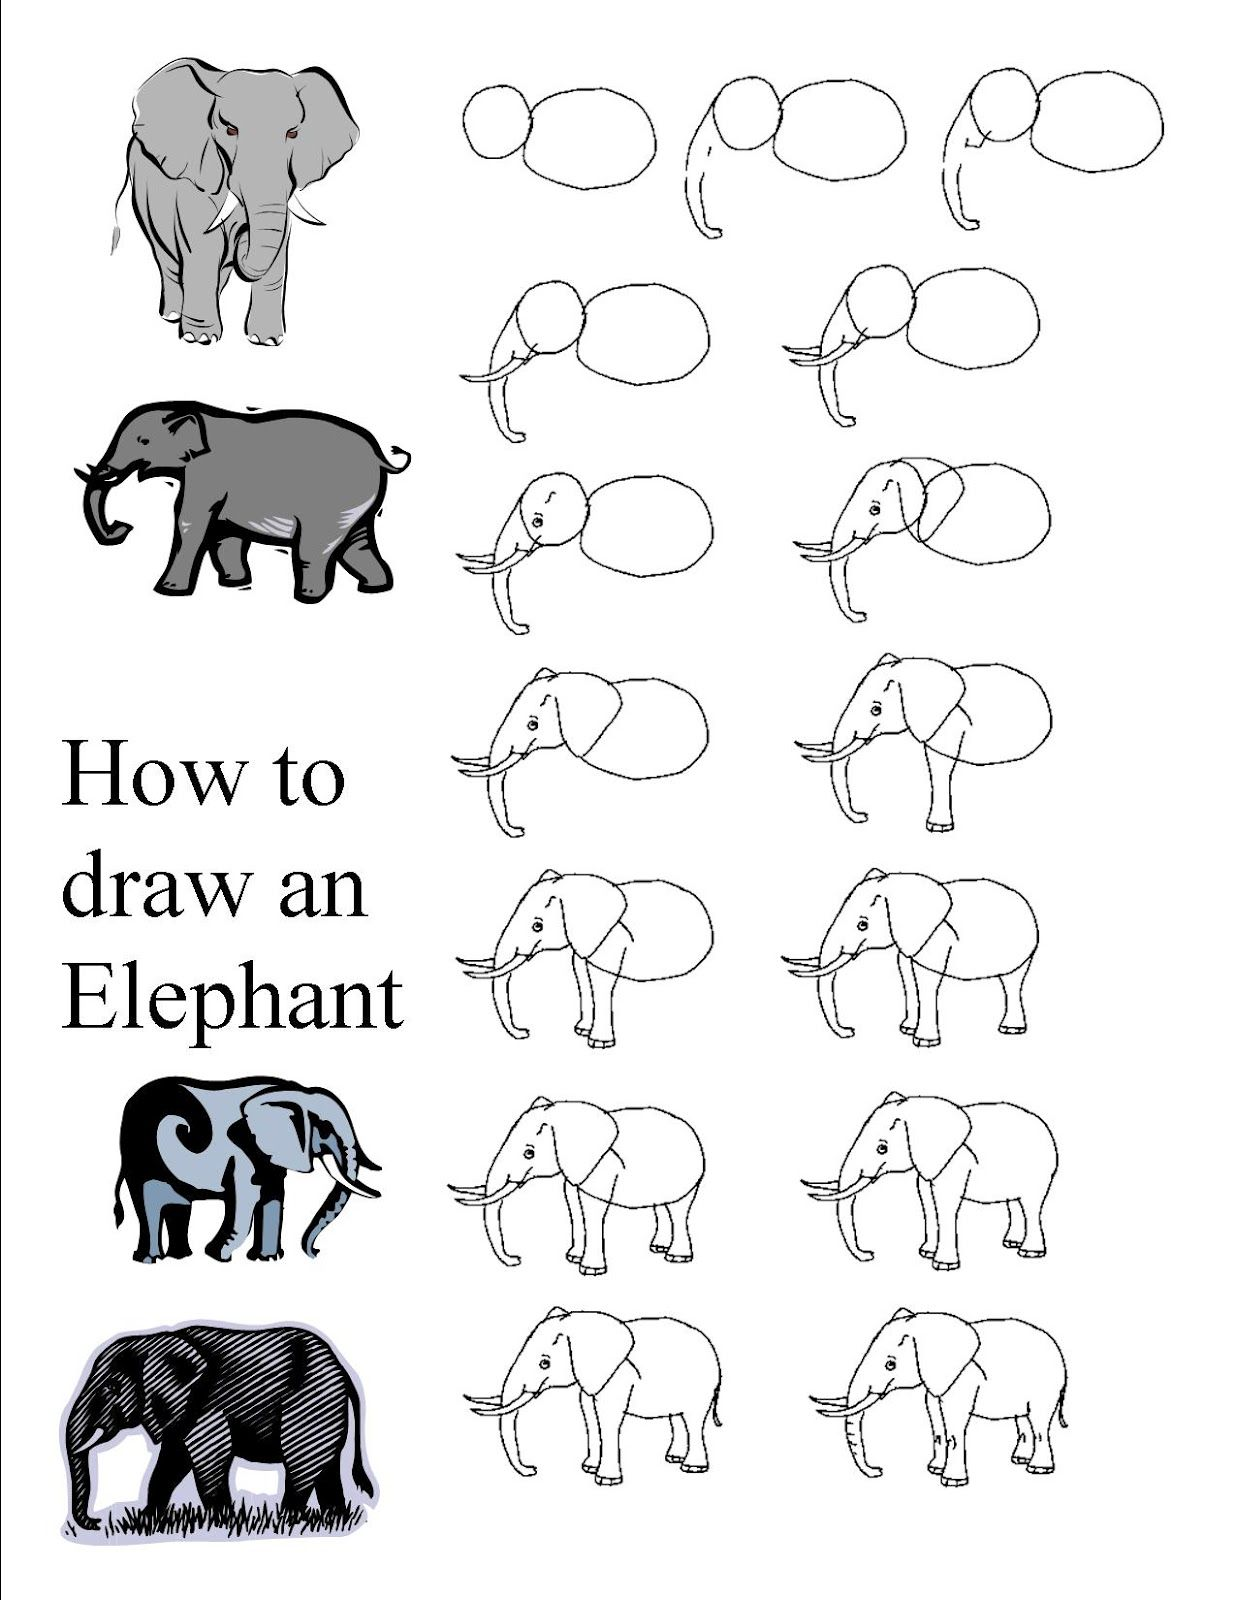 How To Draw An Elephant Jpg 1 236 1 600 Pixels Elephant Drawing